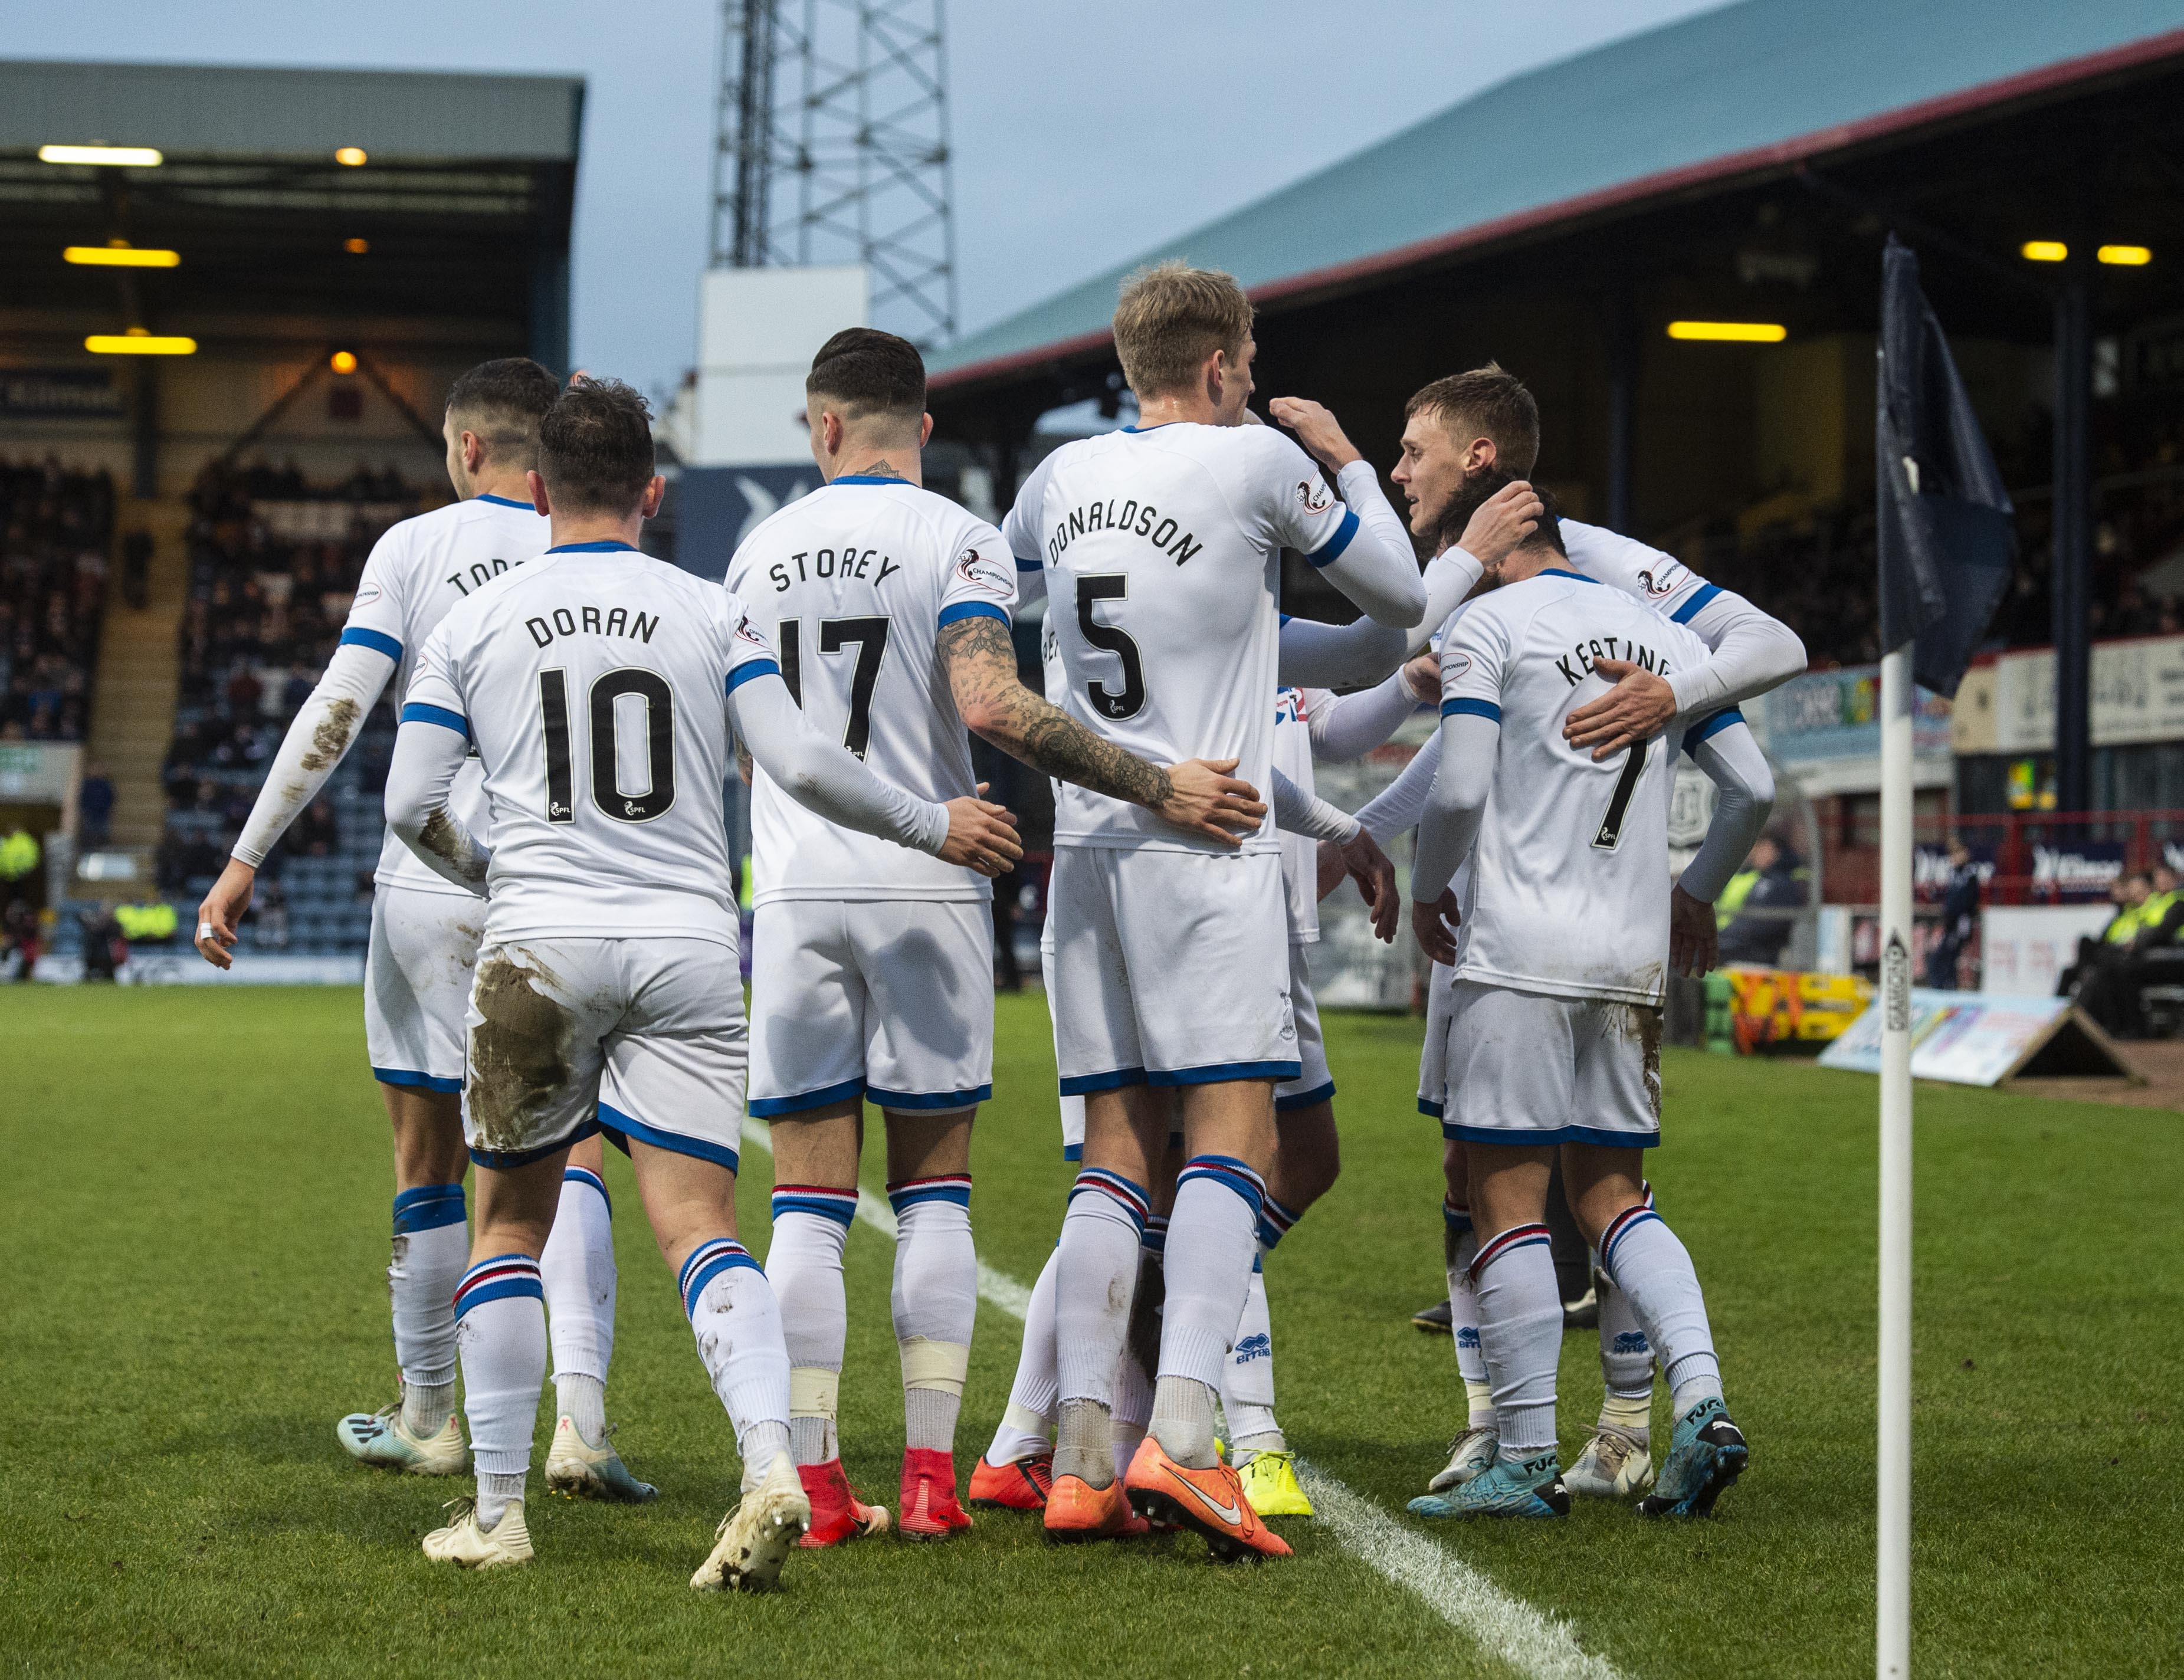 James Keatings, right, celebrates his goal to make it 2-0 during the Ladbrokes Championship match between Dundee and Inverness CT.